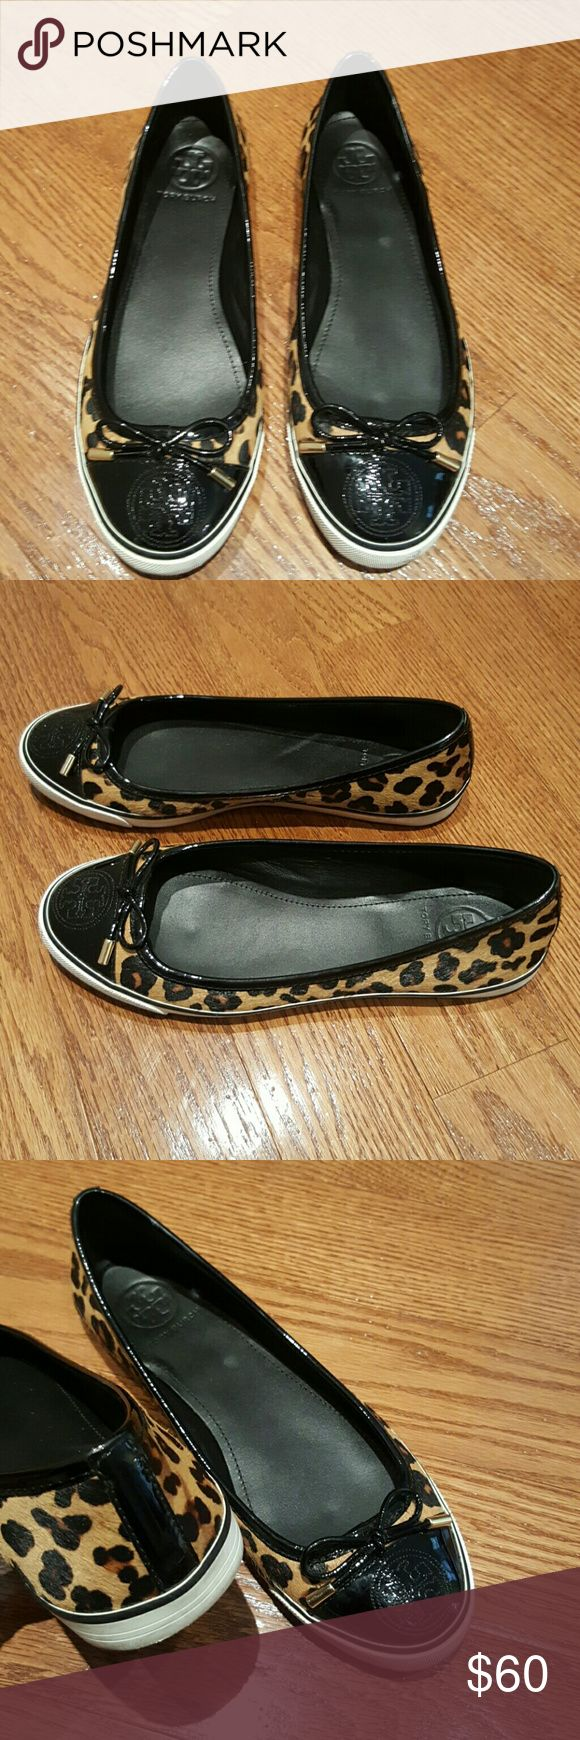 Tory Burch flat shoes Animal print ballet shoes Tory Burch Shoes Flats & Loafers